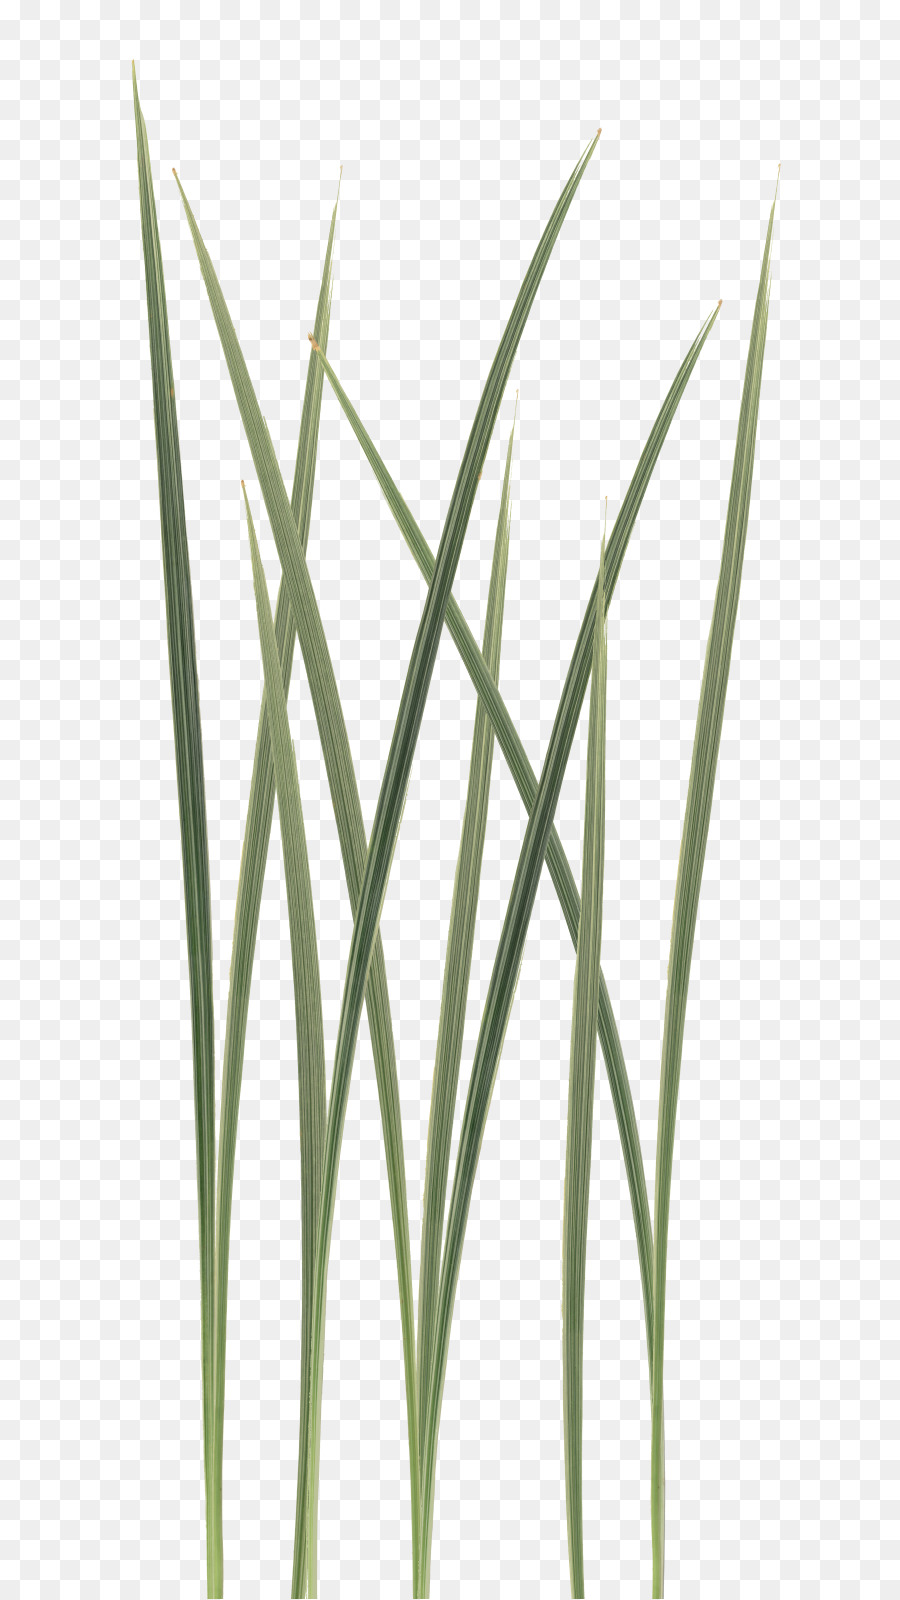 Grass Leaf Texture png download - 682*1599 - Free Transparent